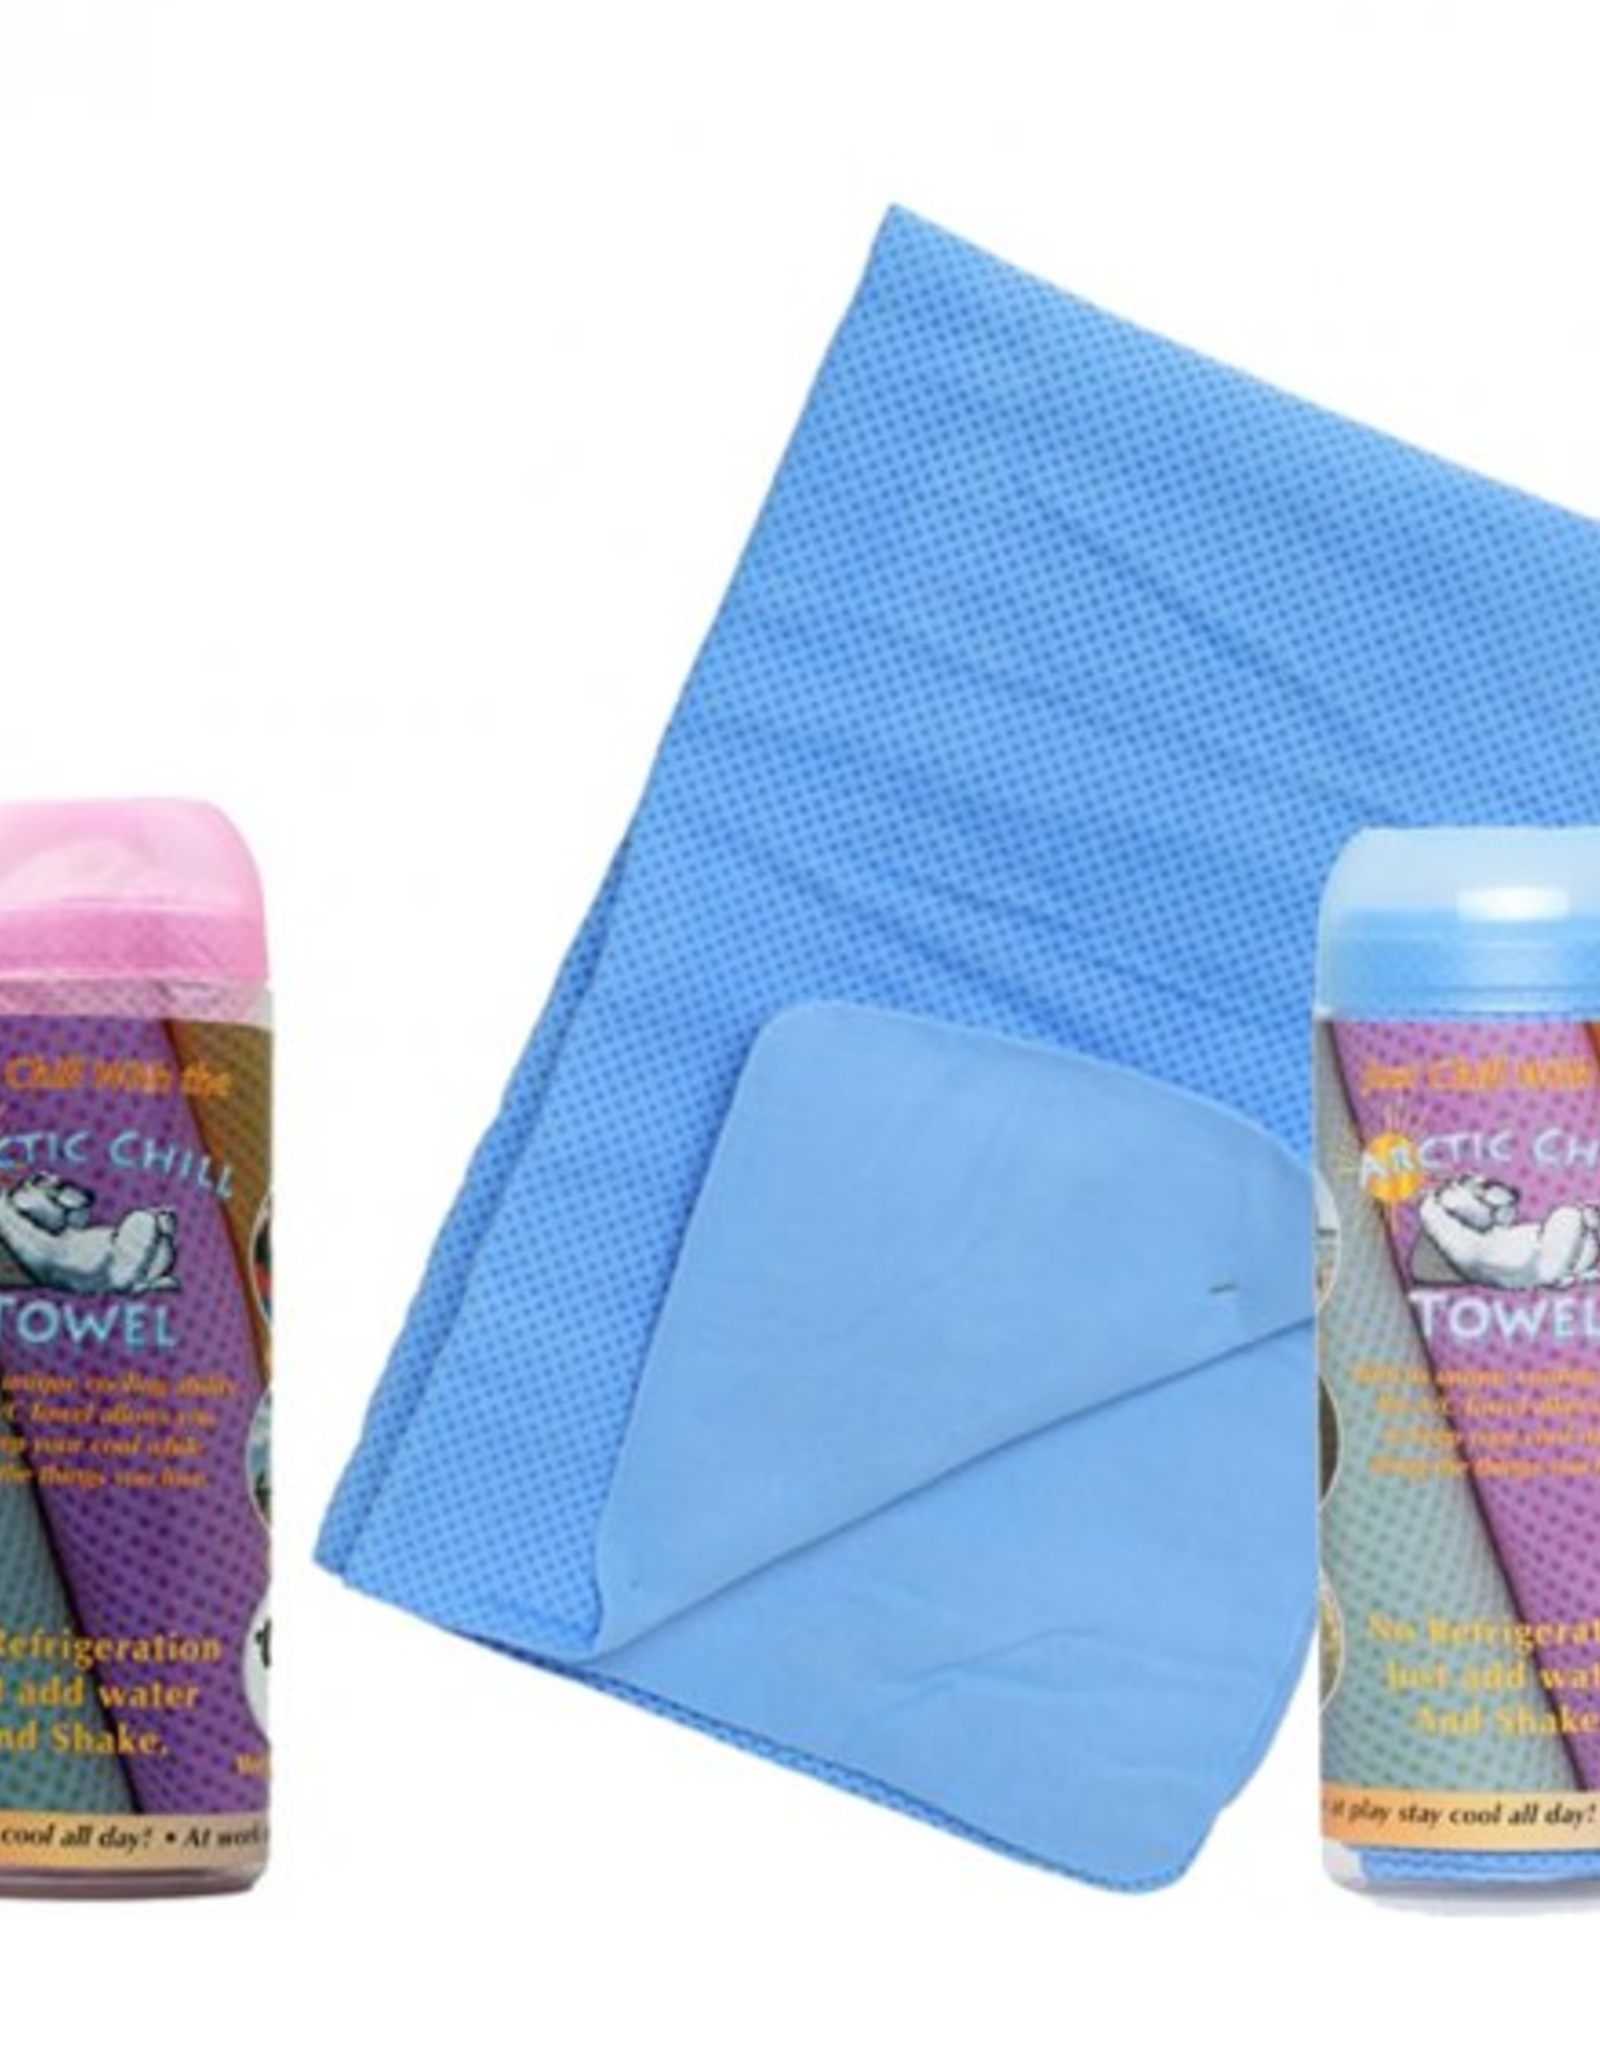 Dasha 2447 Arctic Chill Towel